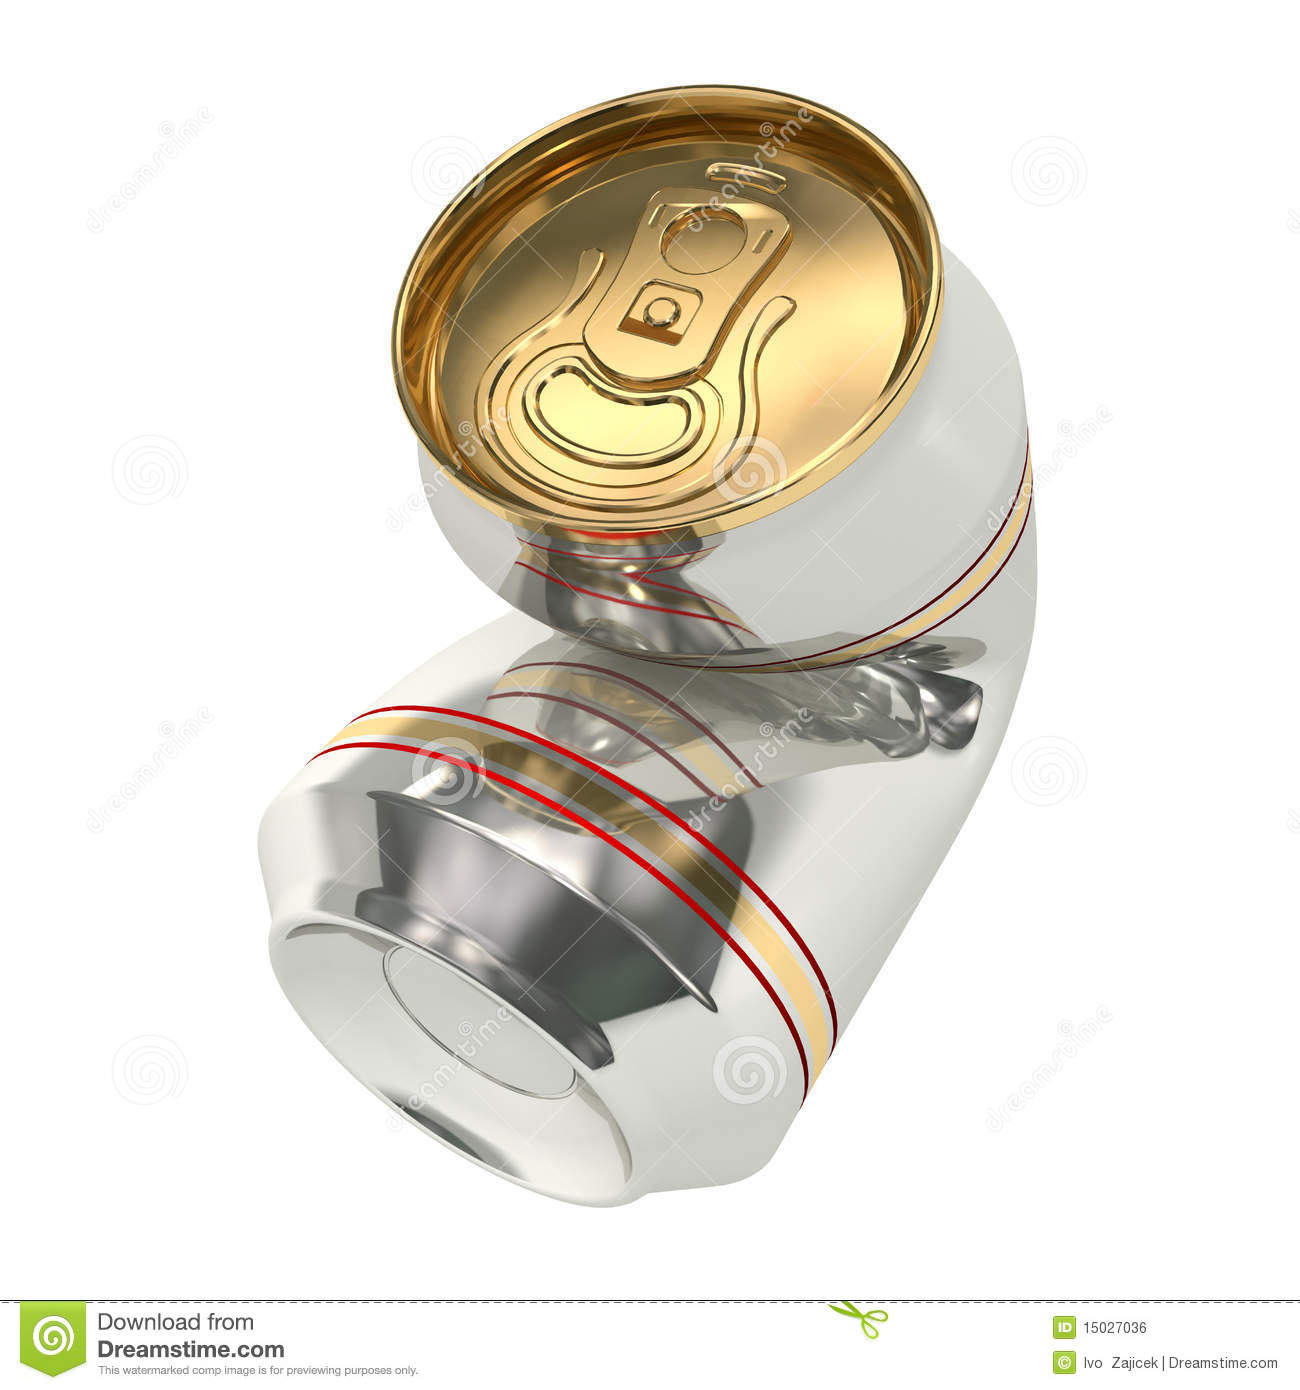 Crushed beer can 01 stock illustration. Image of ...  Crushed Beer Can